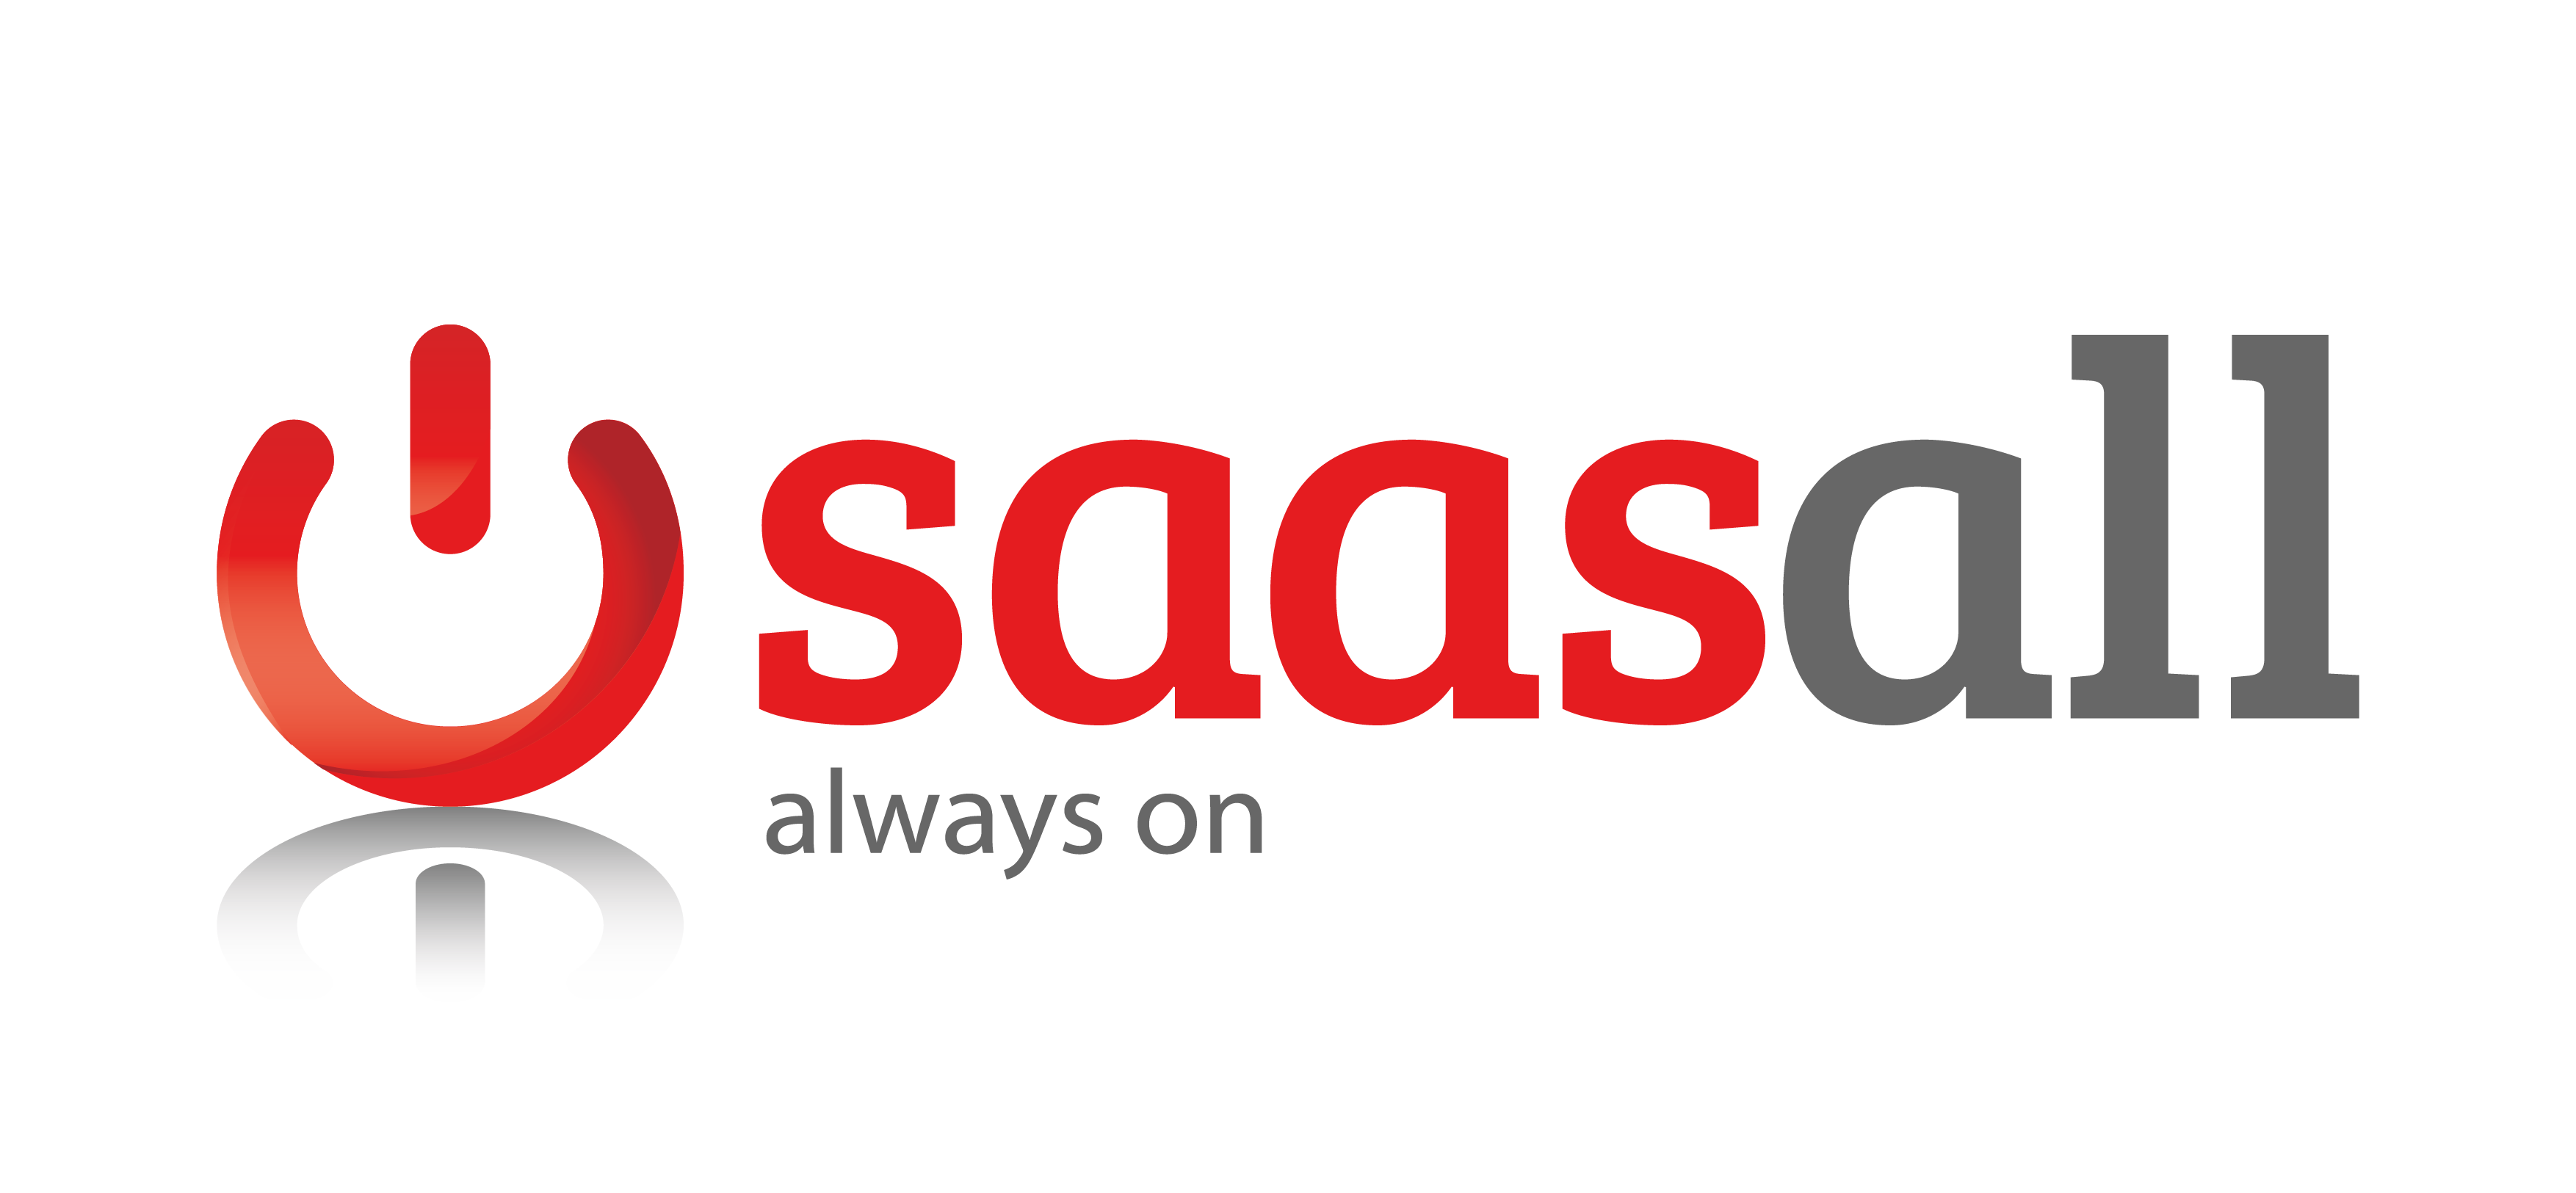 saasall – using leading cloud applications to help growing businesses